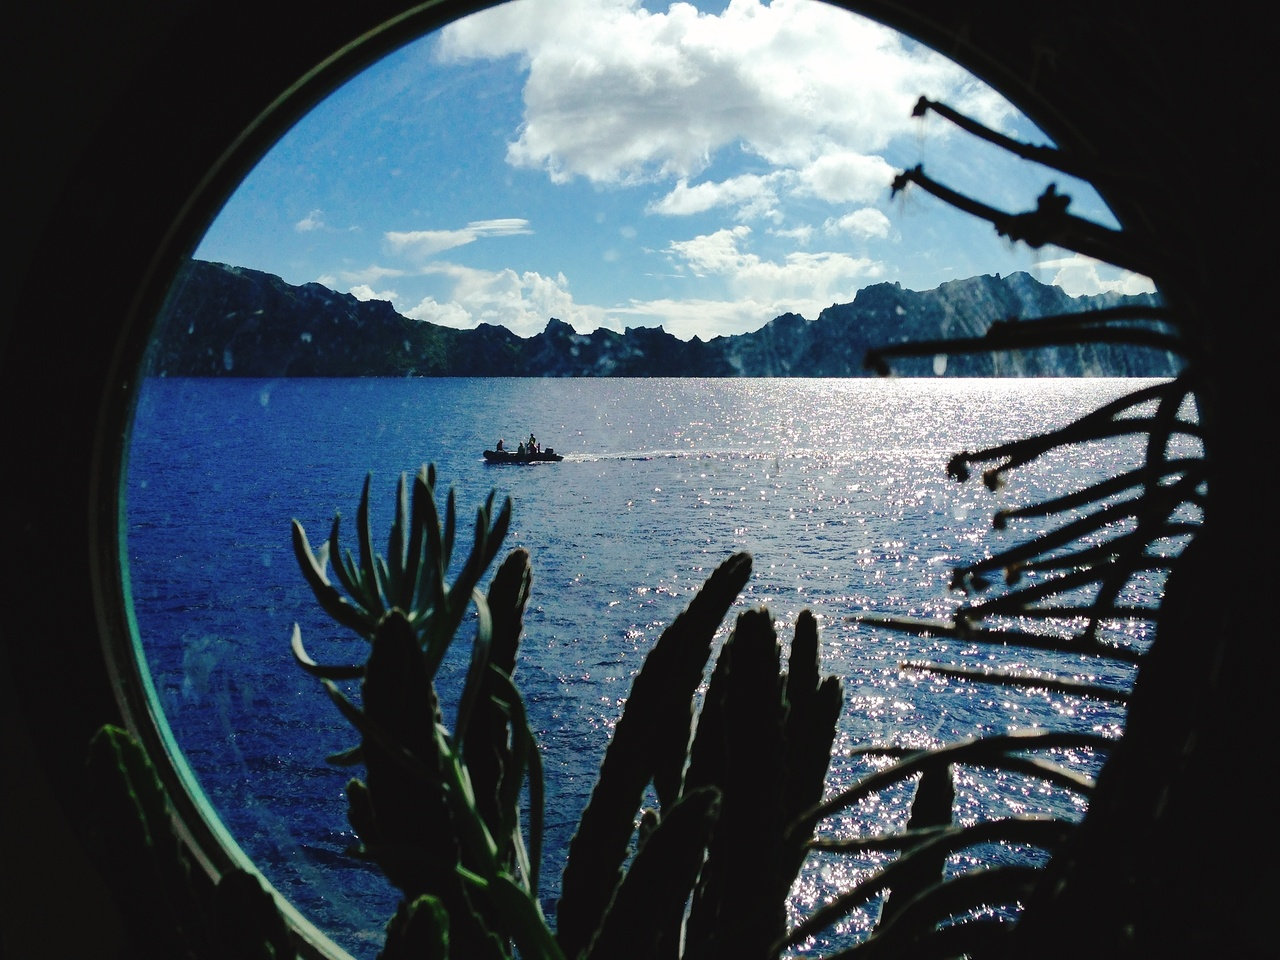 A porthole view of one of our small research vessels at Maug Island